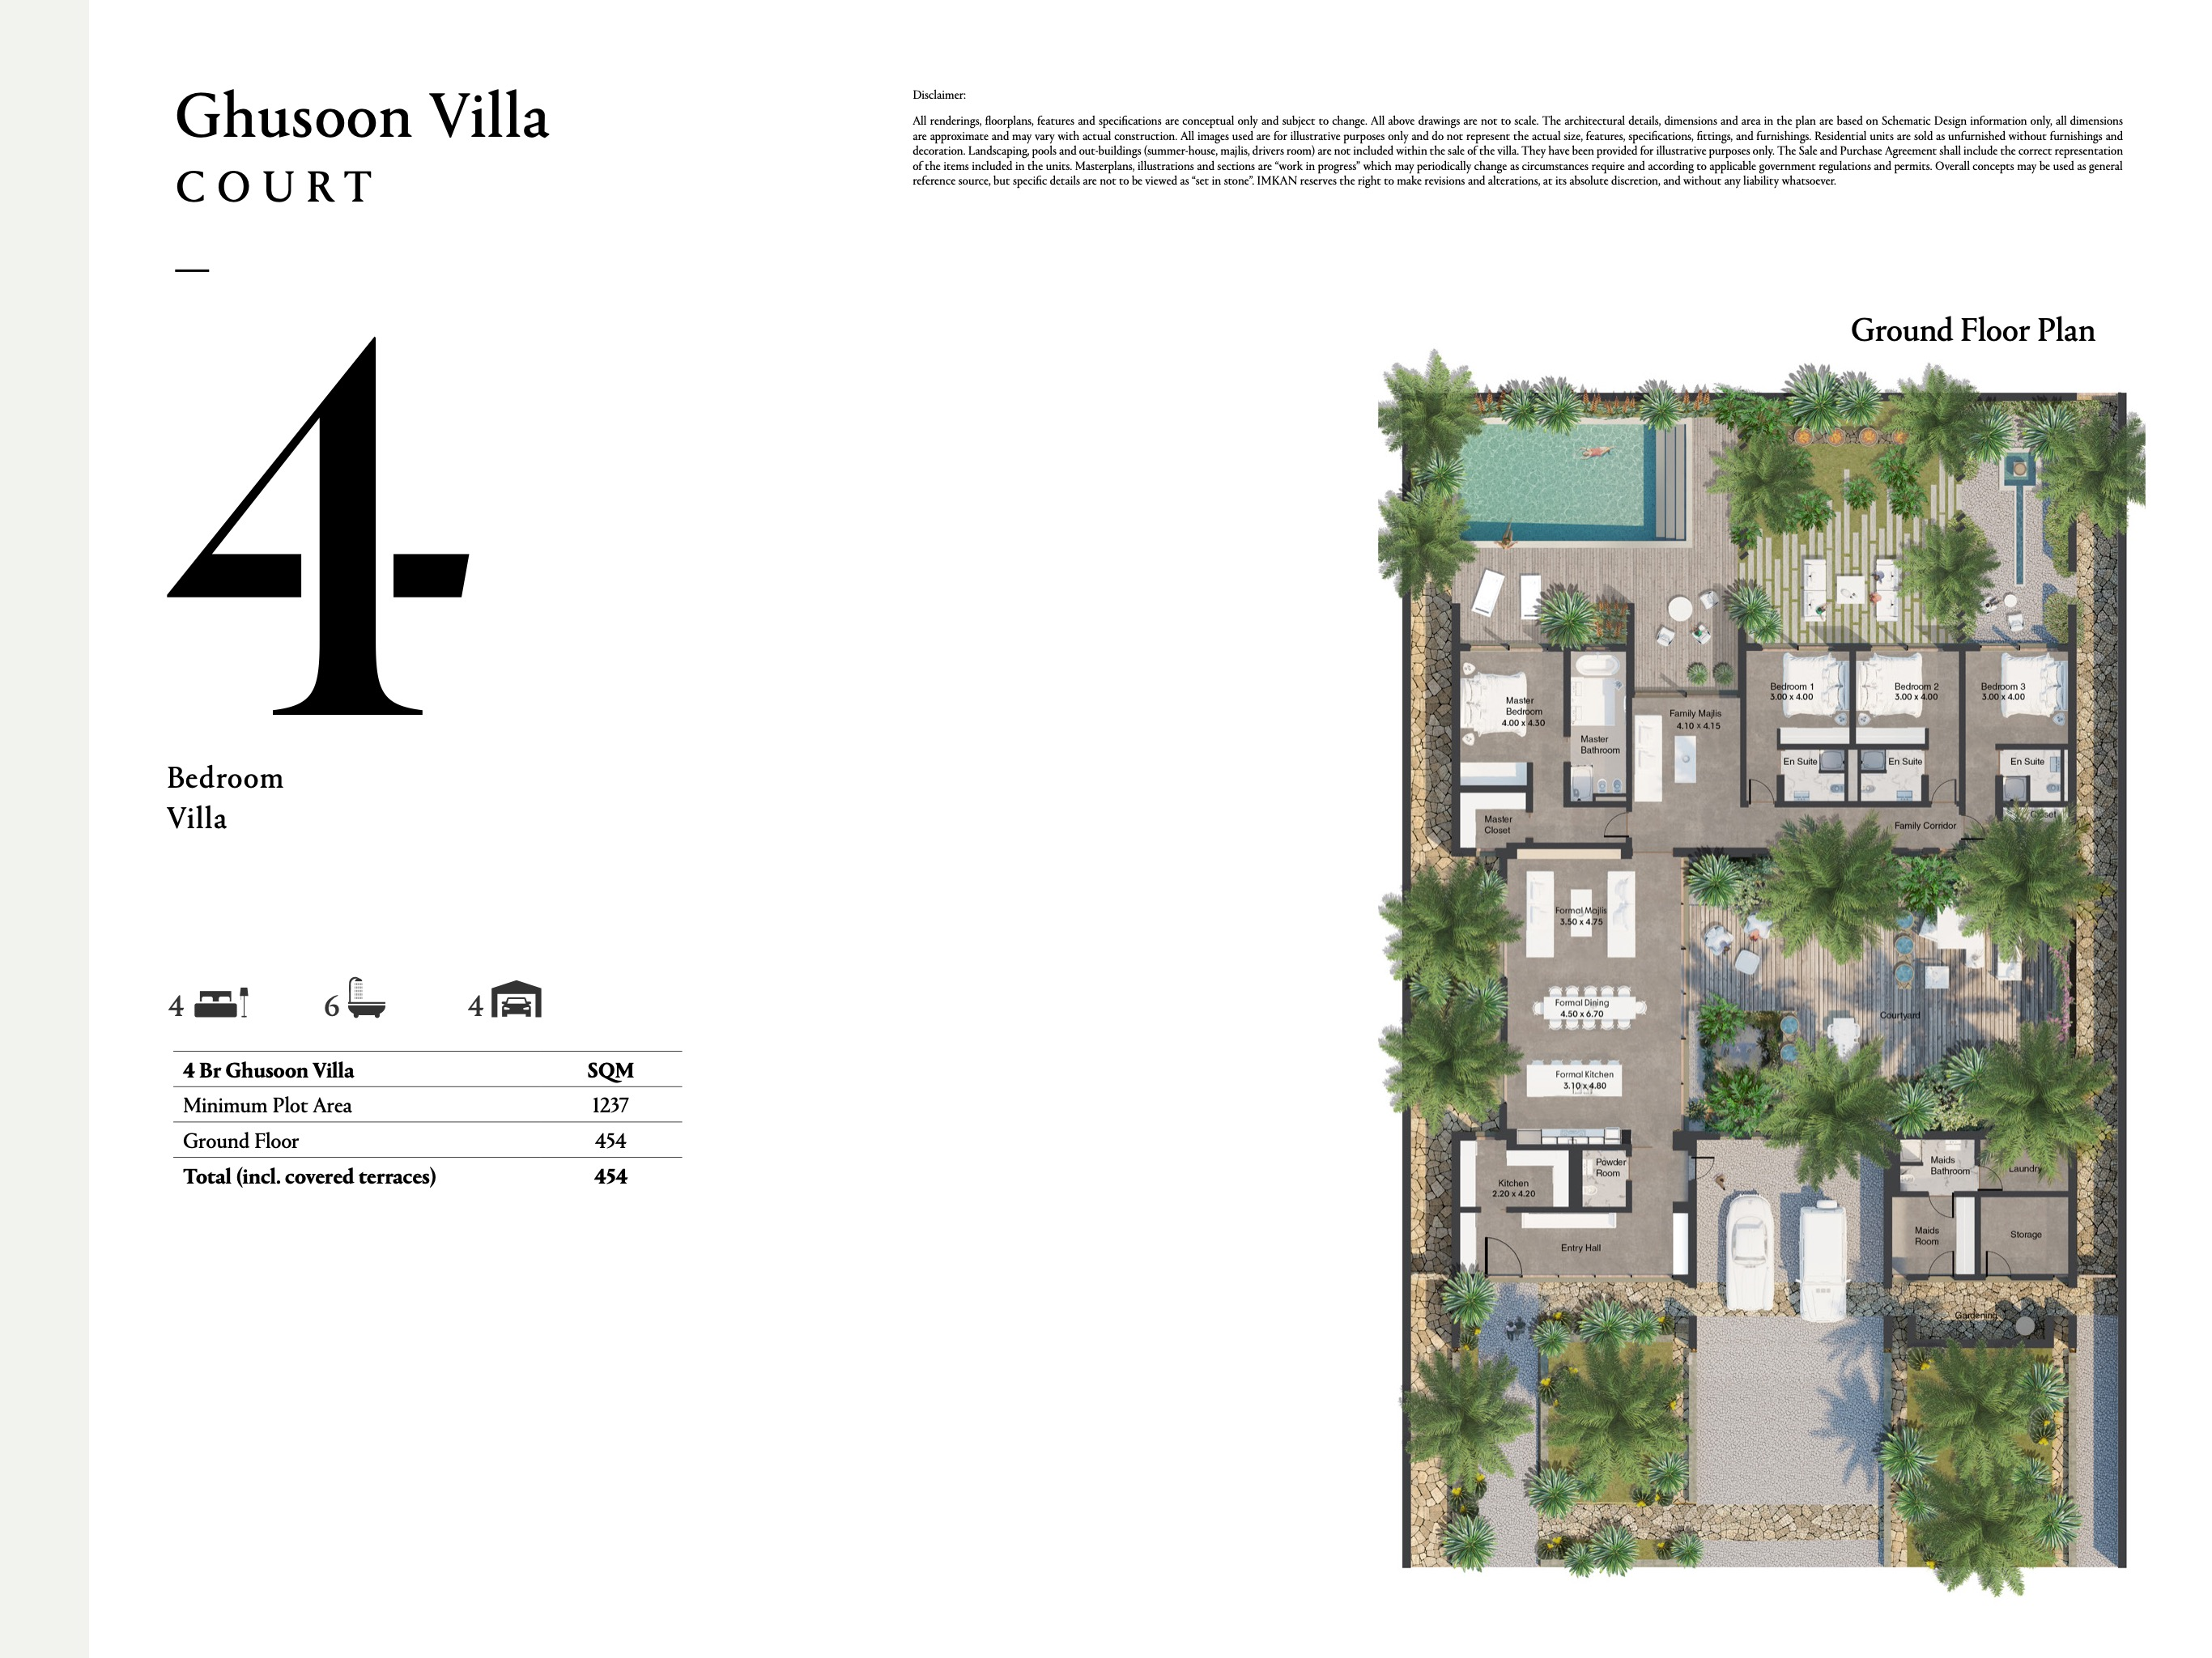 Ghusoon Villa - 4 Bedroom with a size area of 454 sqm